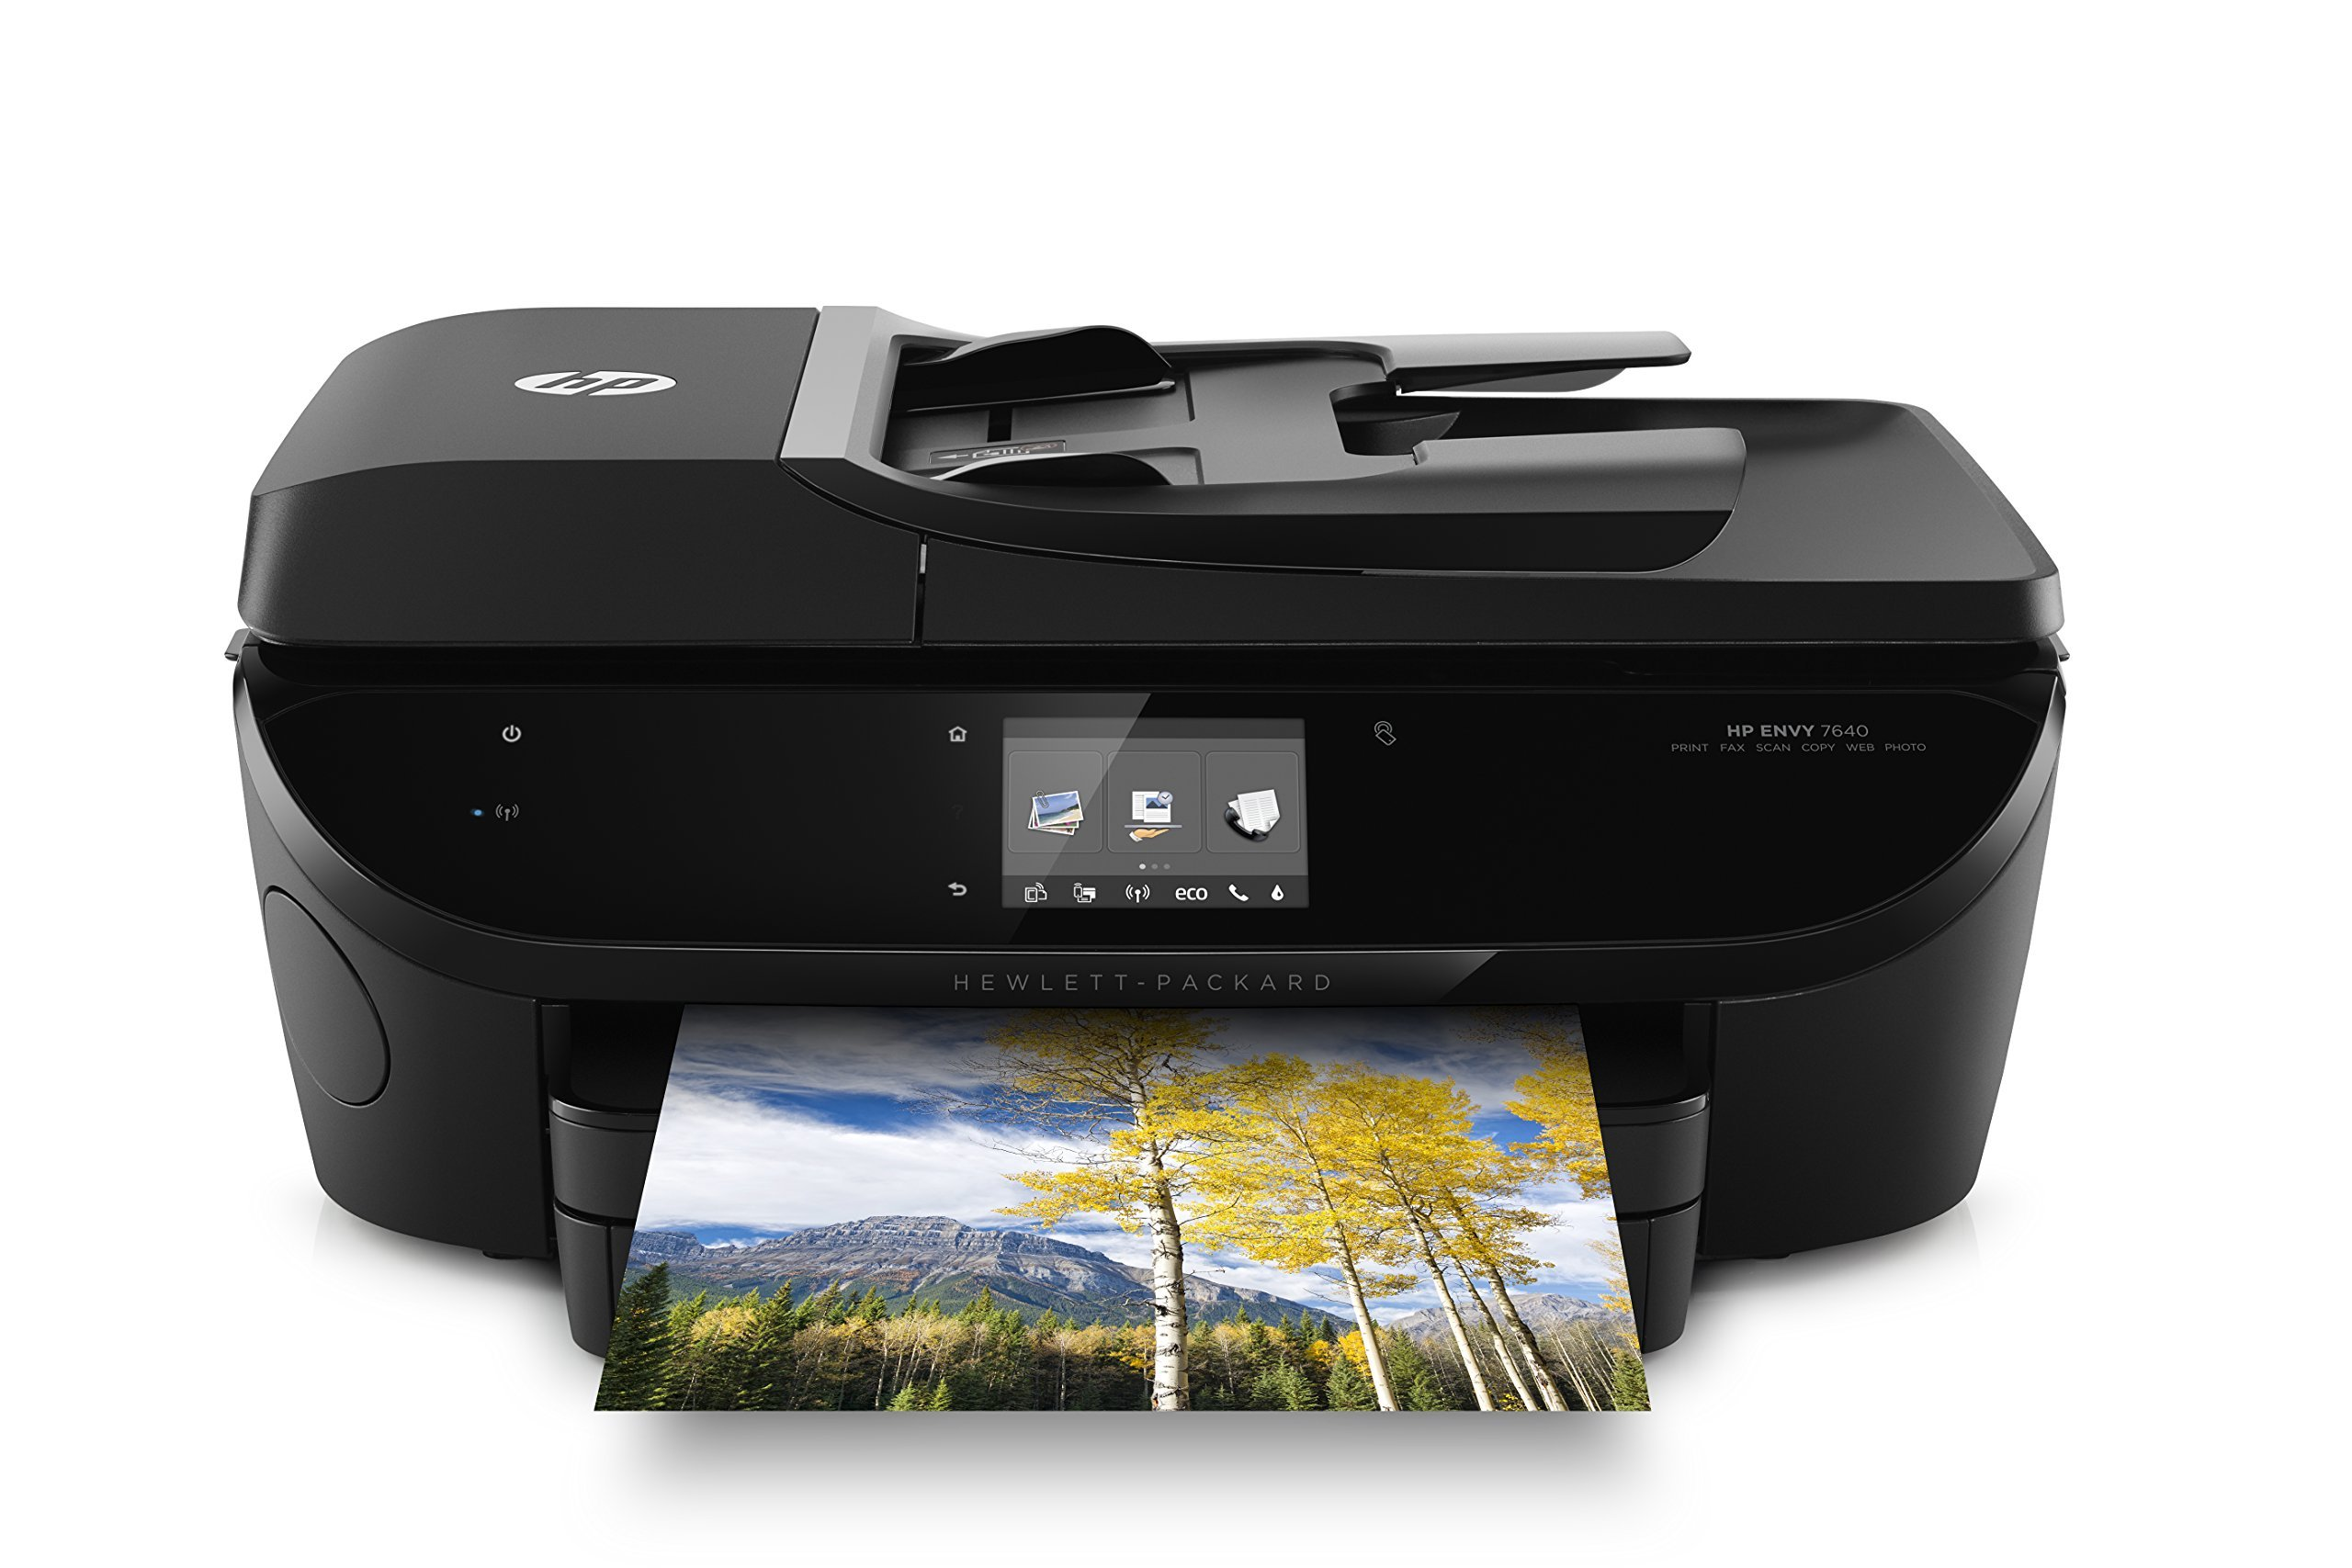 HP Envy 7640 Wireless All-in-One Photo Printer with Mobile Printing, Instant Ink ready (E4W43A) by HP (Image #1)